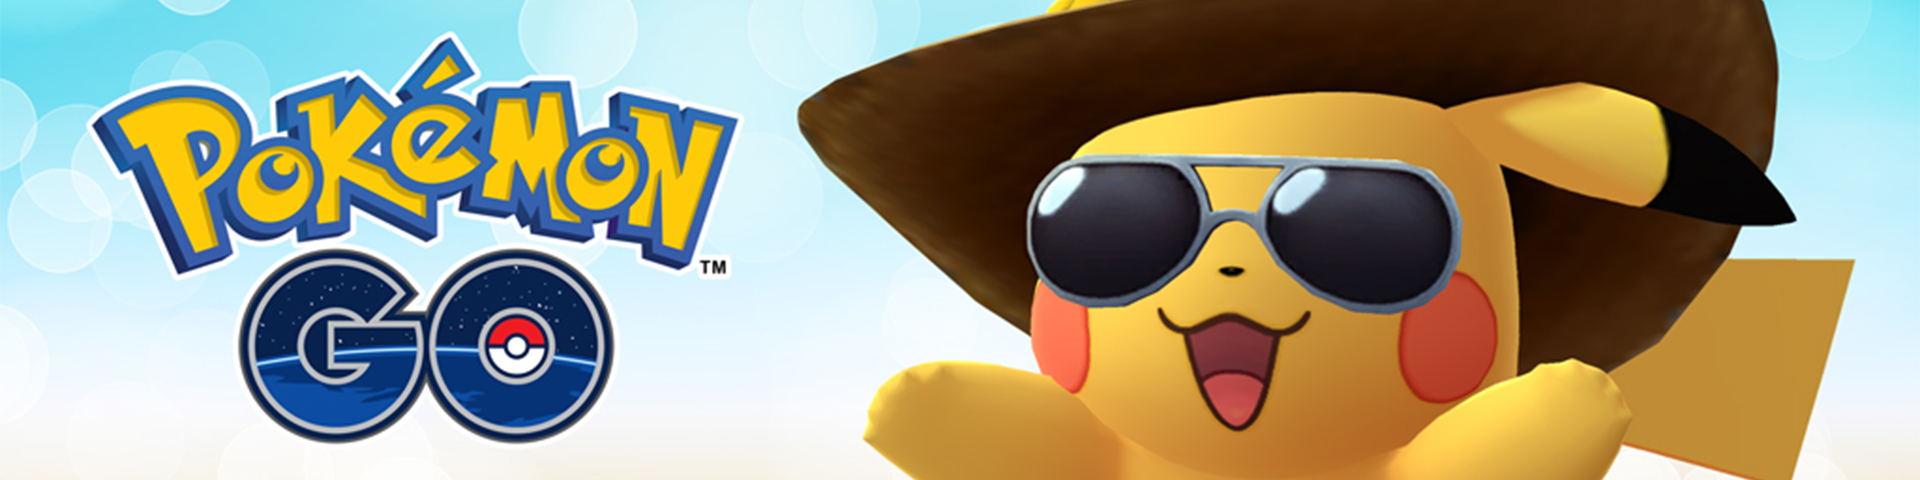 Pikachu Pokemon Go New.png